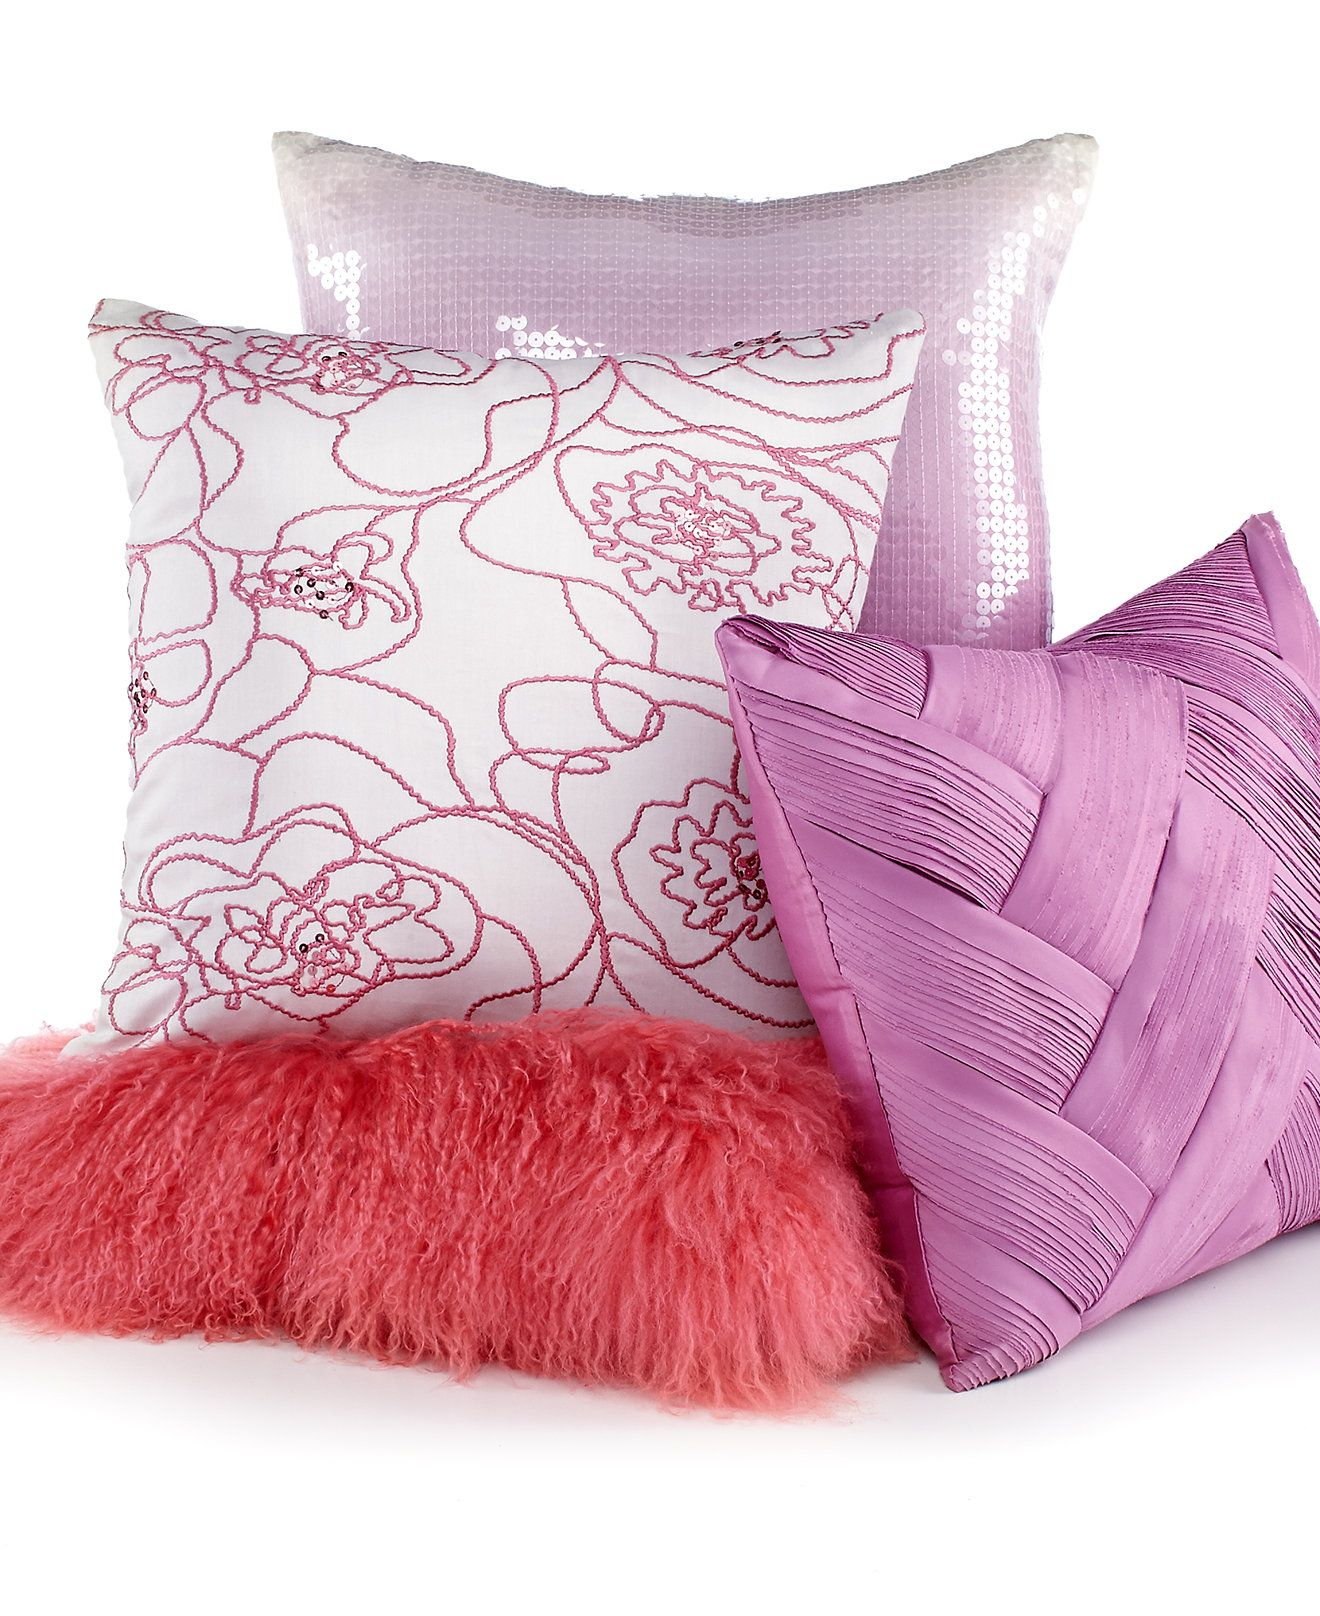 Macy's Decorative Pillows Adorable Inc International Concepts Ava Decorative Pillow Collection Design Inspiration